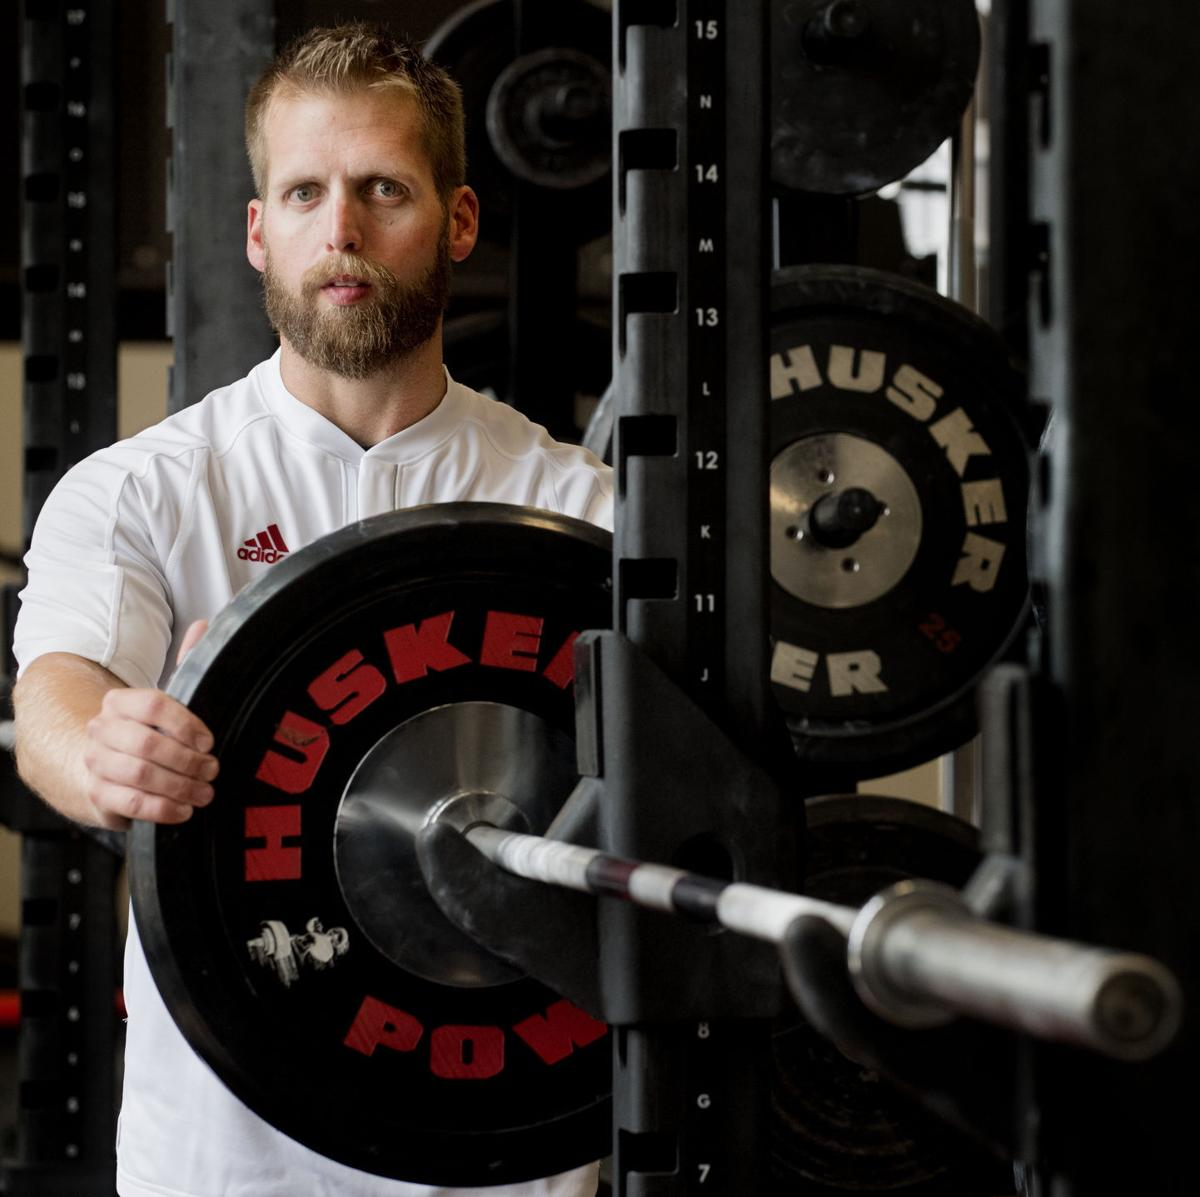 Crawford's rise in ring aided by Husker football strength coach